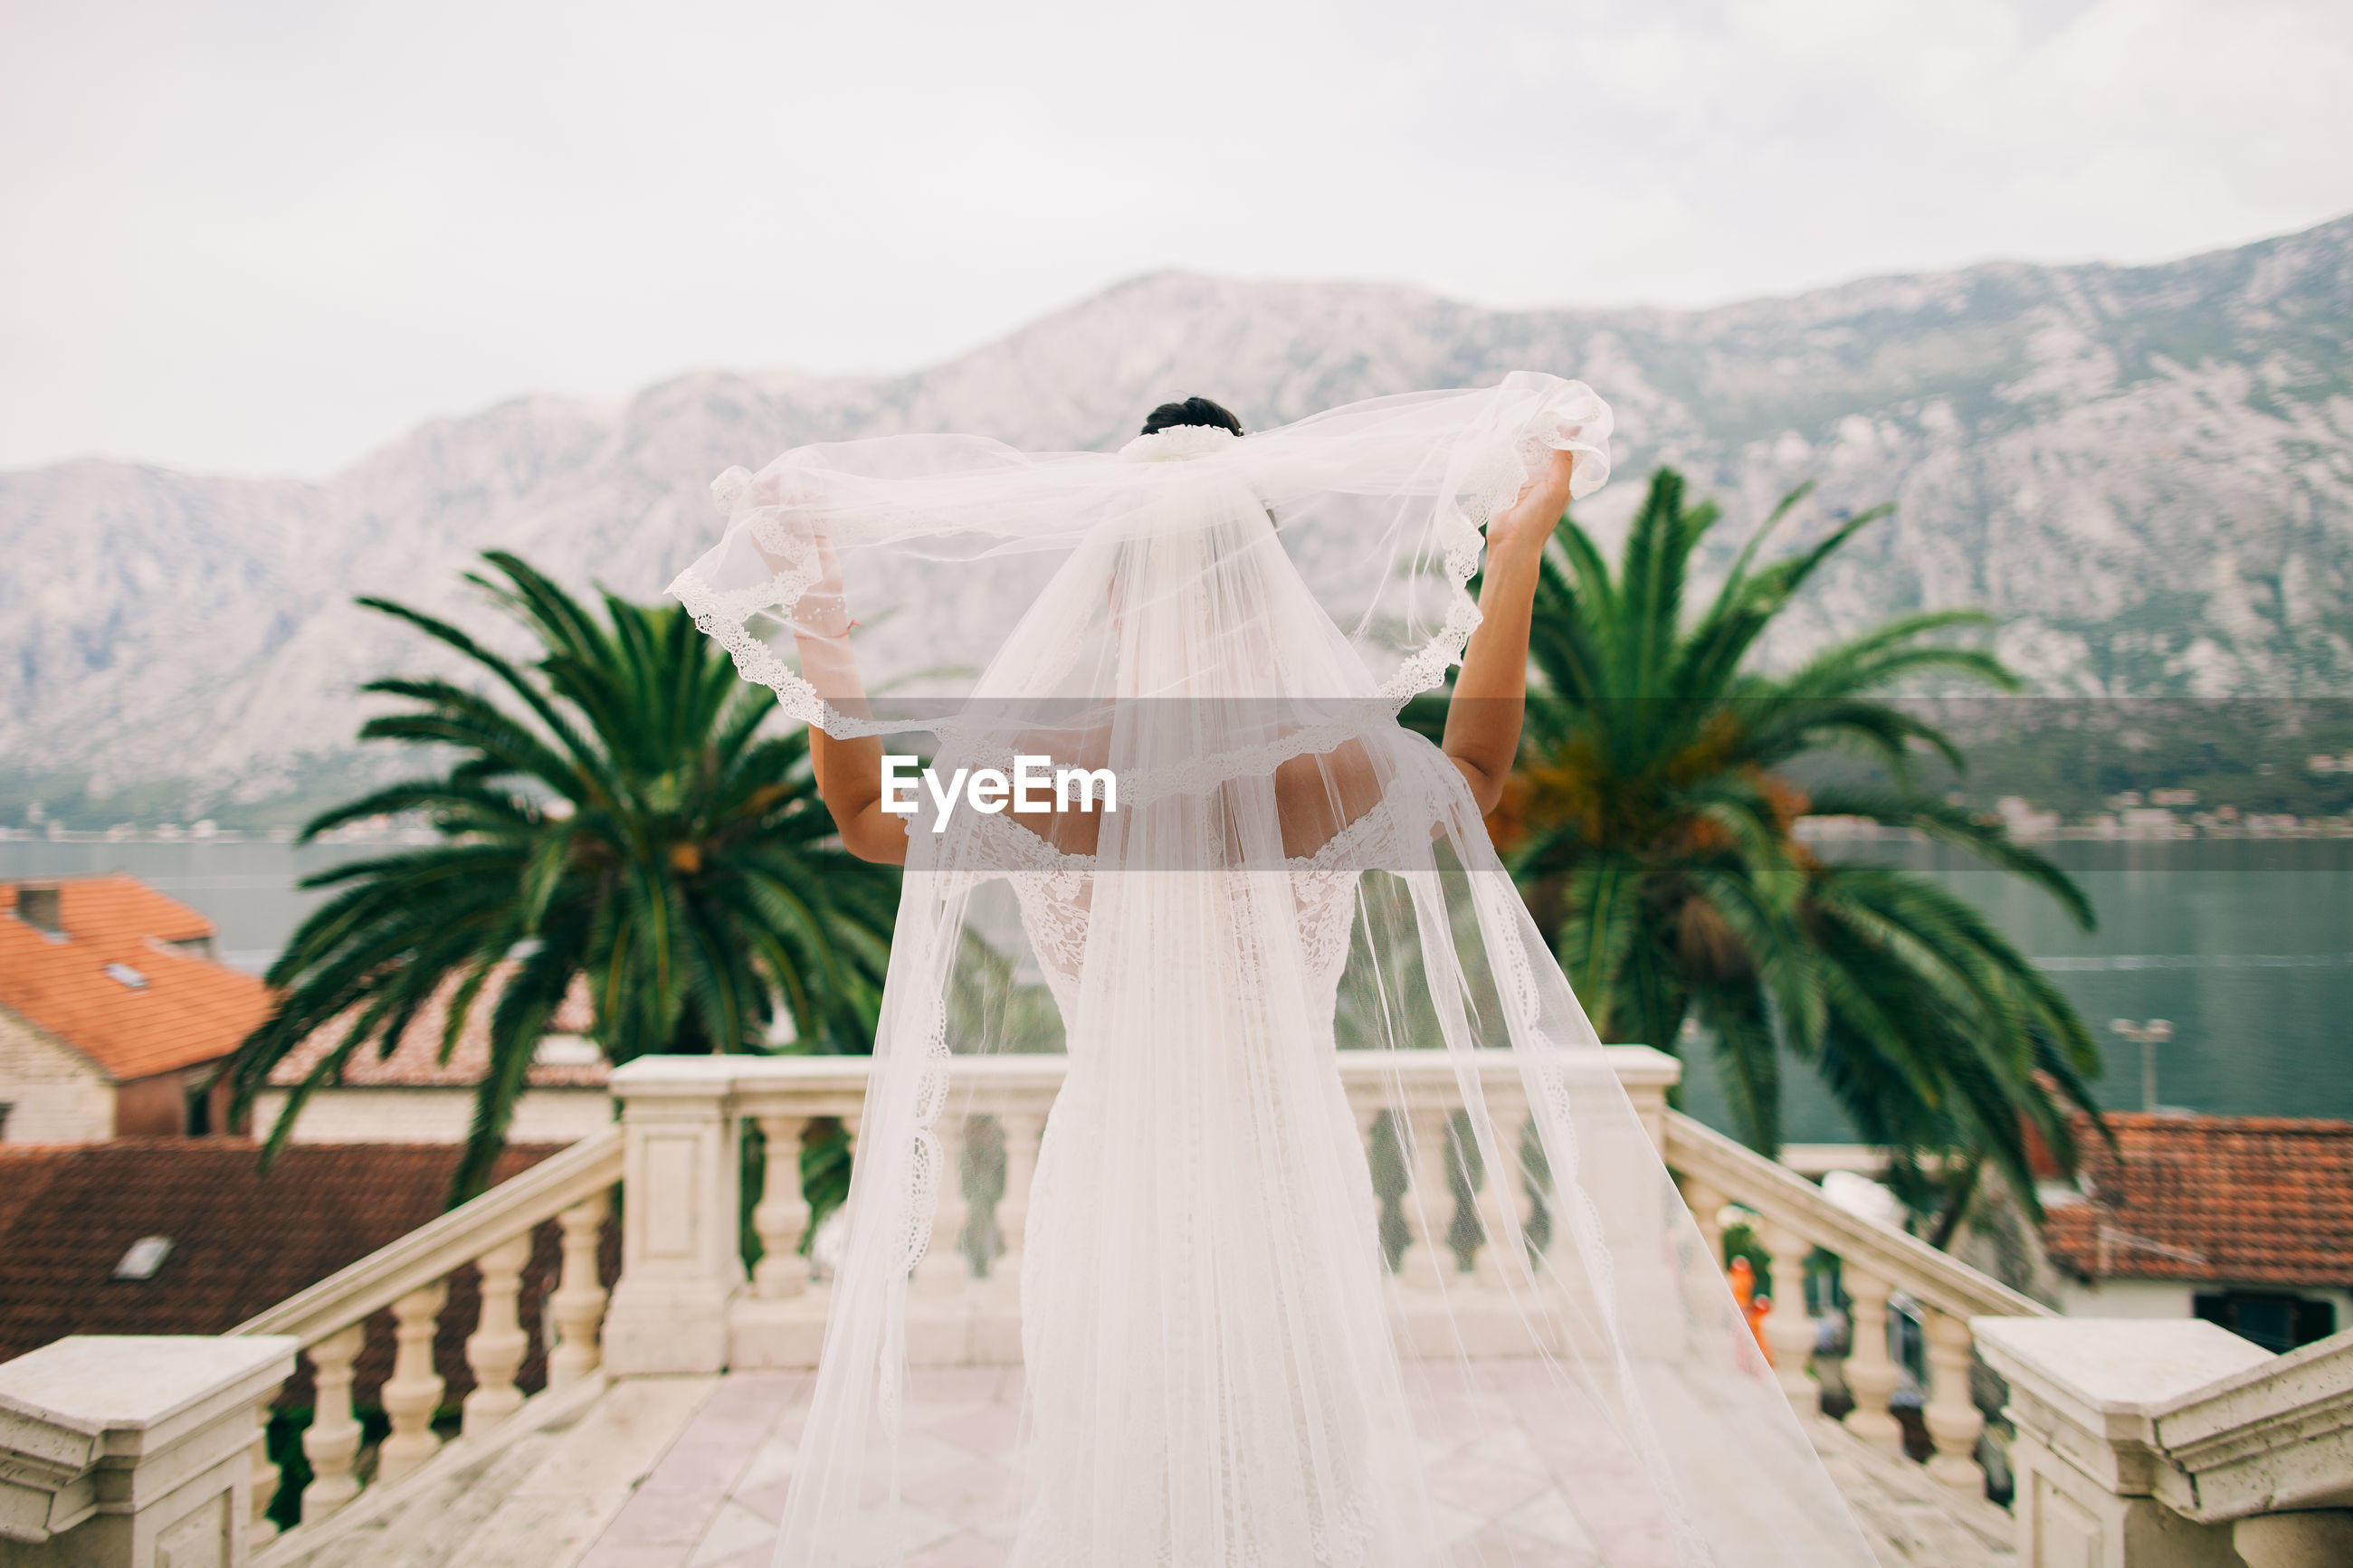 Rear view of bride holding veil at balcony